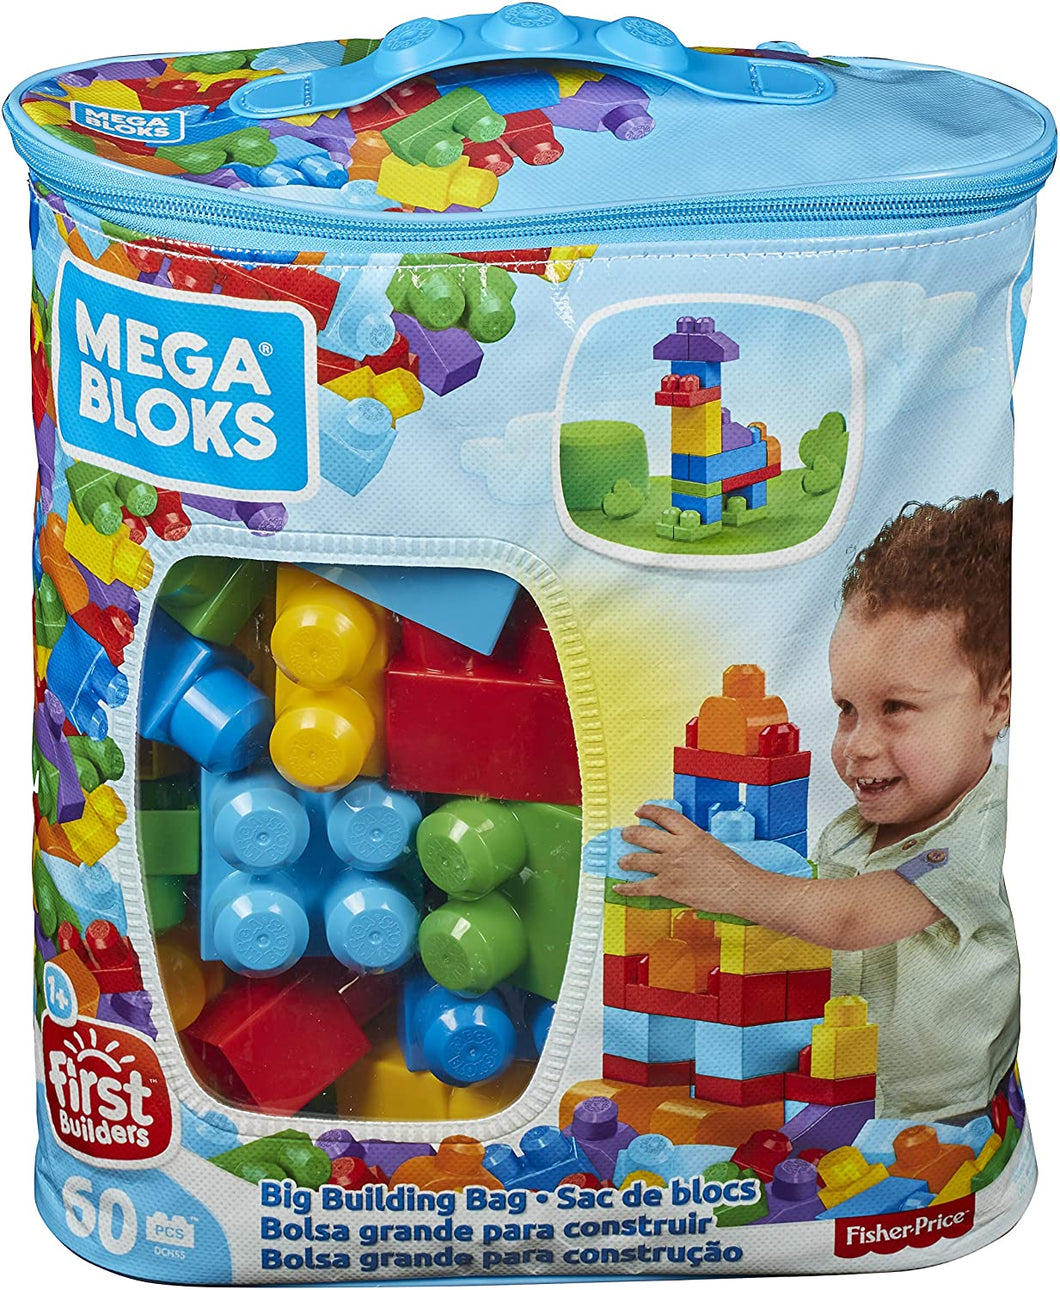 Mega Blocks DCH55 Big Building Bag, Blue, 60 Pieces